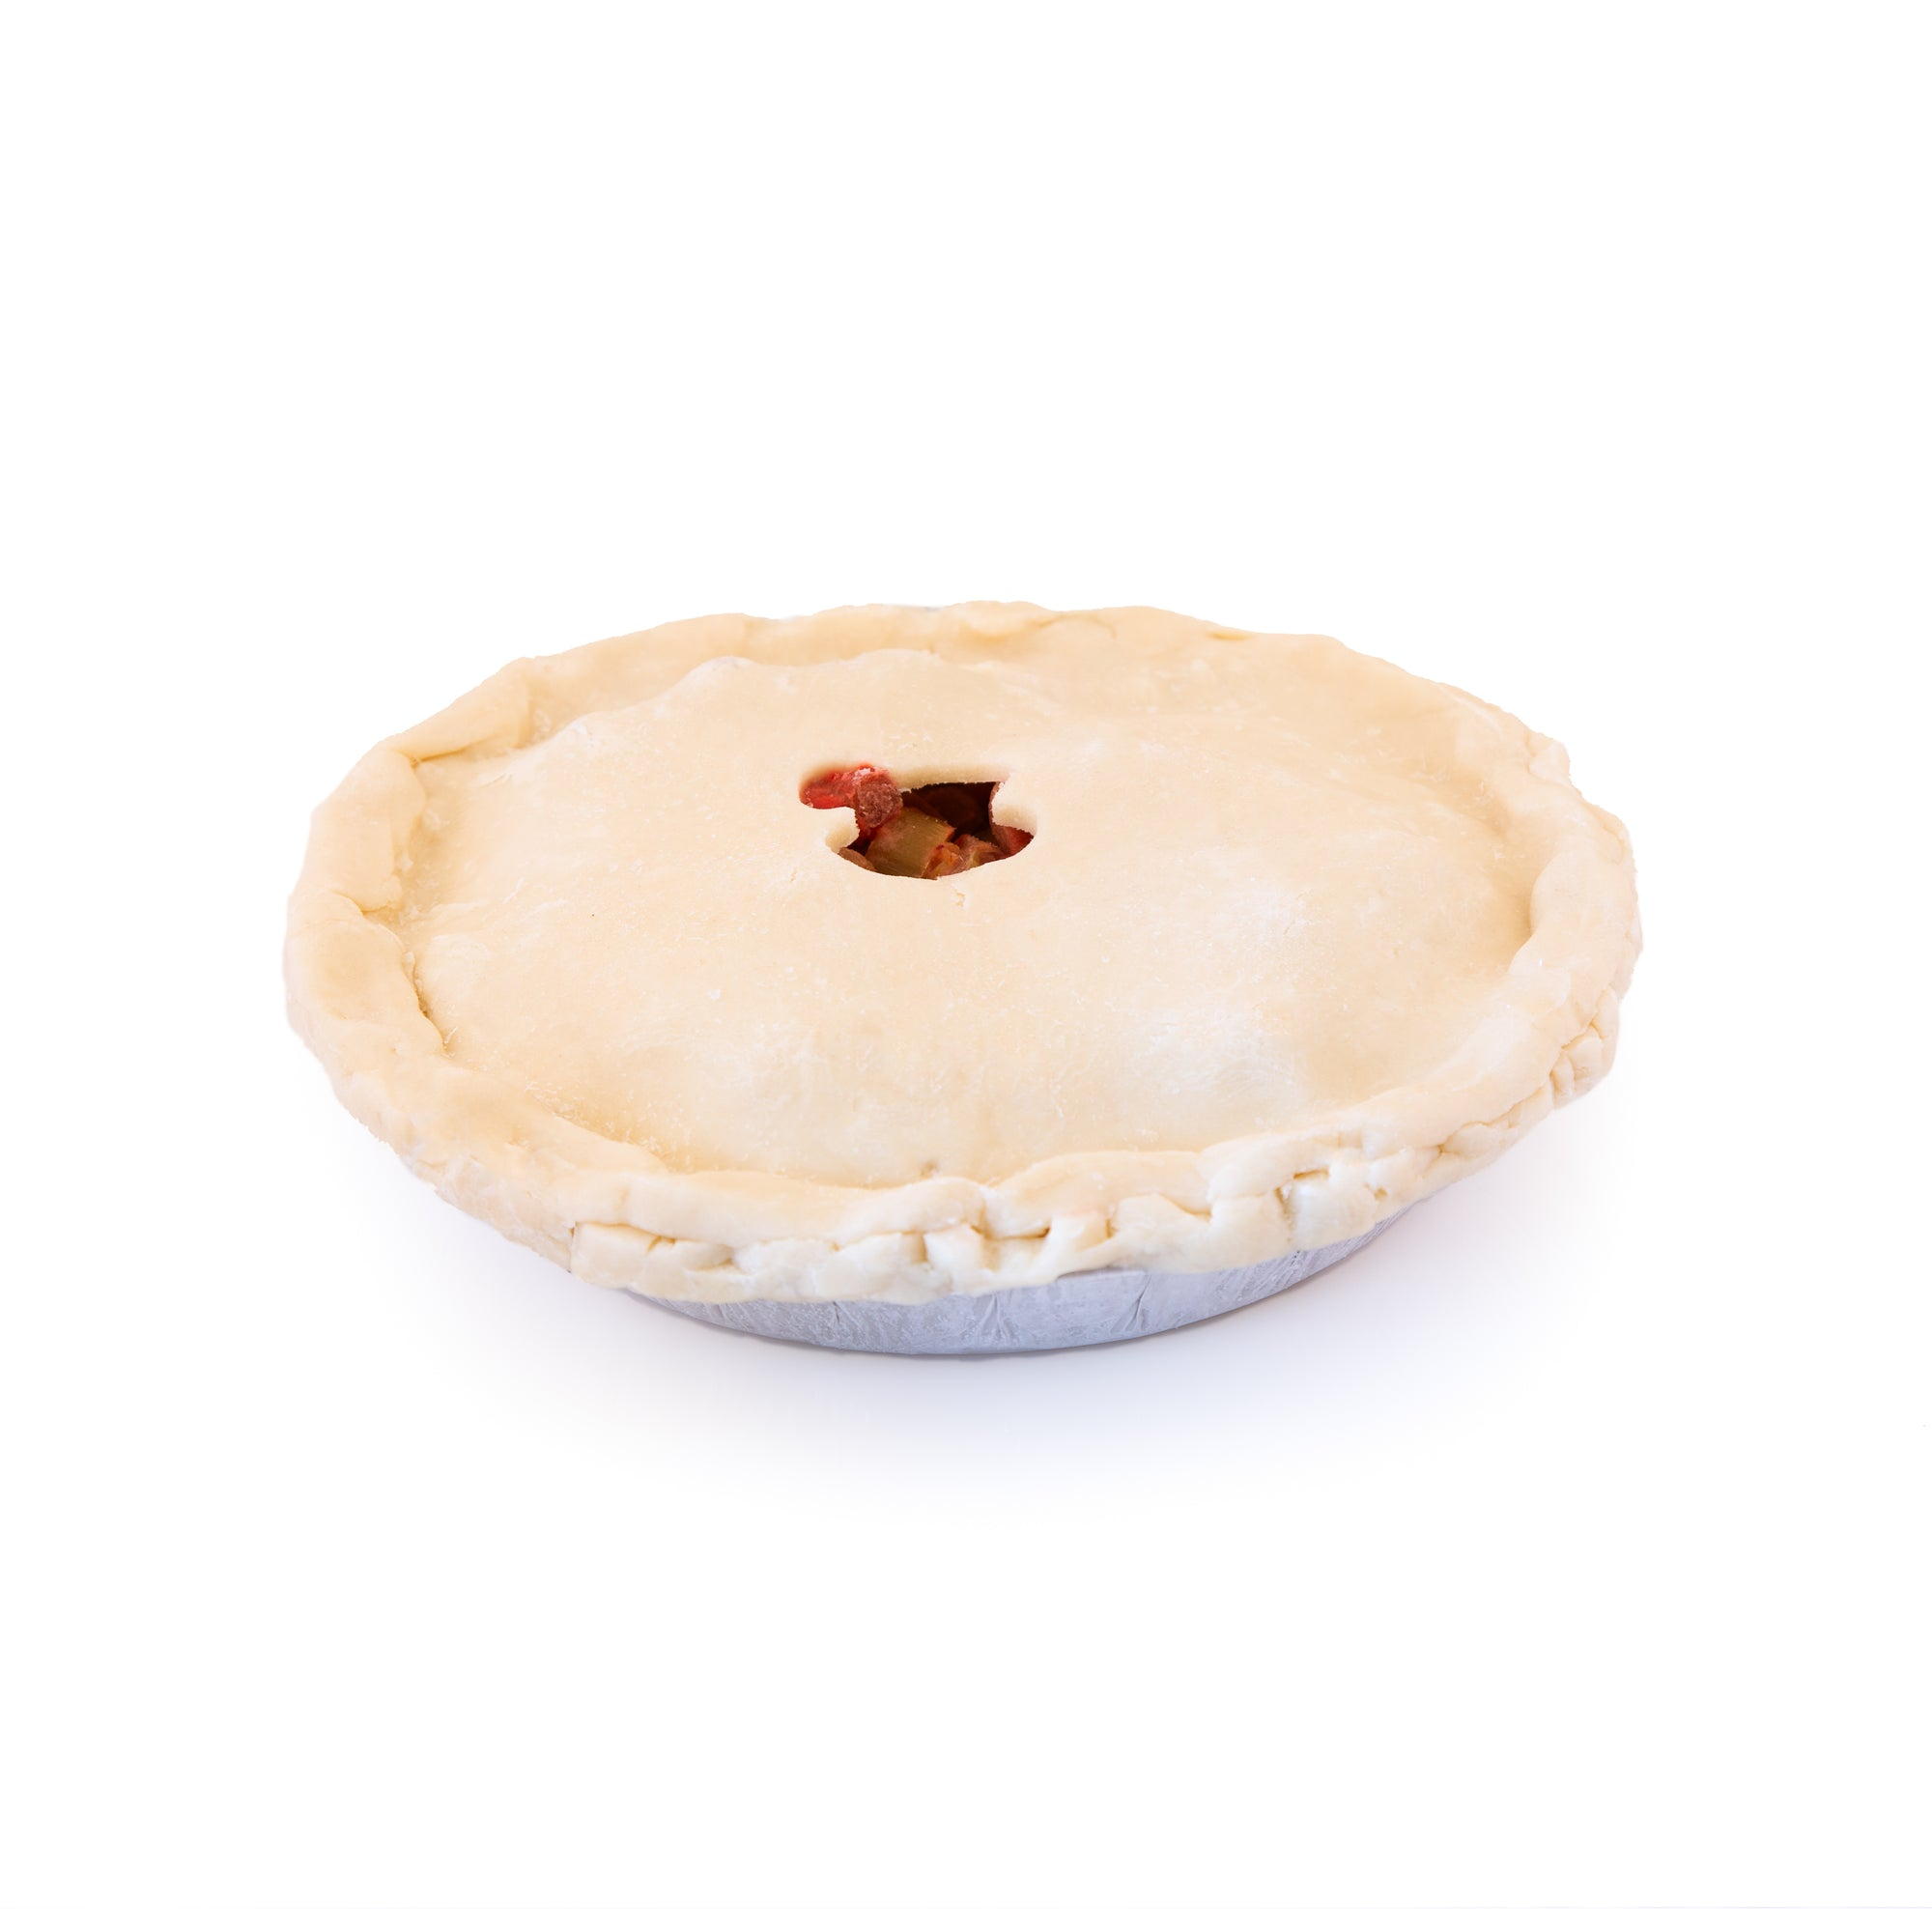 Frozen (unbaked) Saskatoon Black Currant Pie